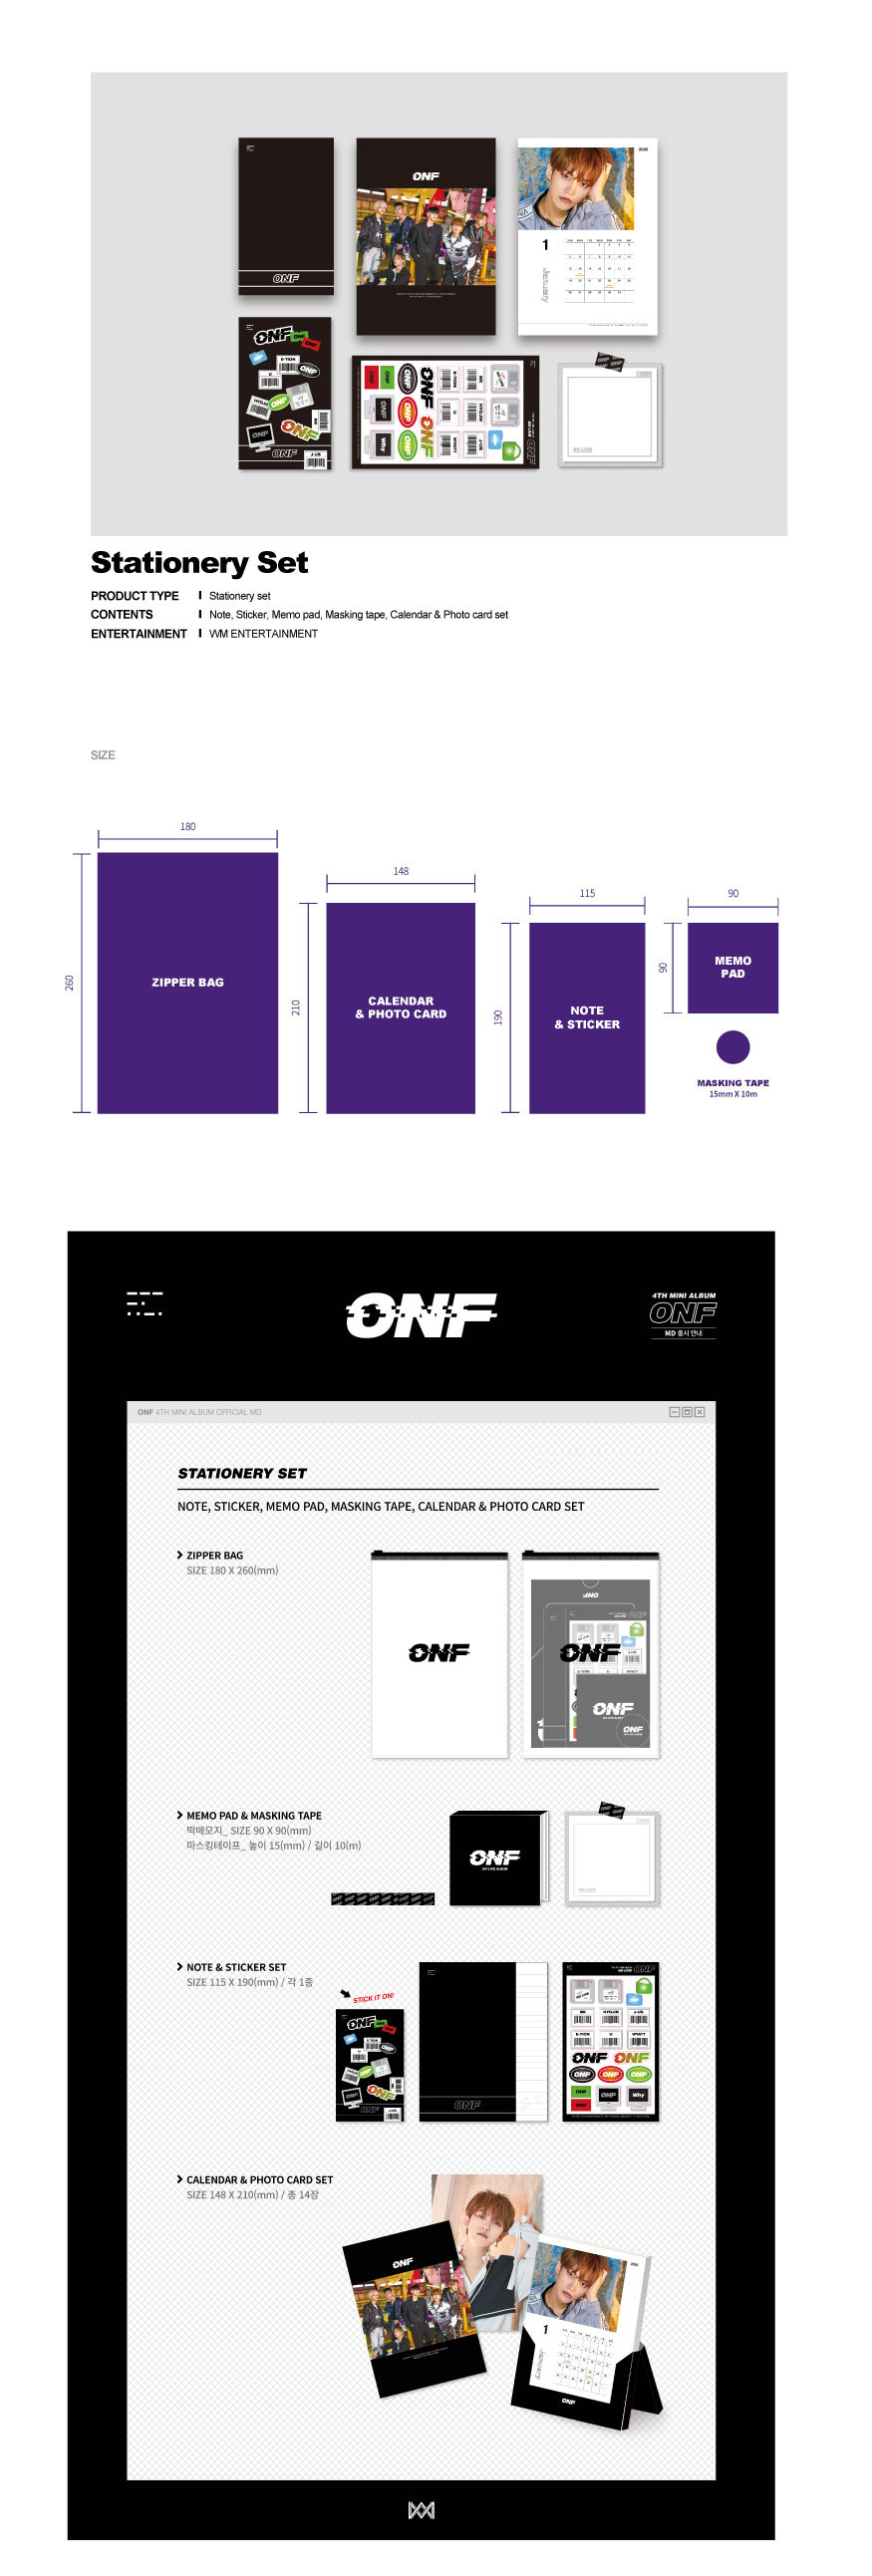 onf_go_live_stationery-1